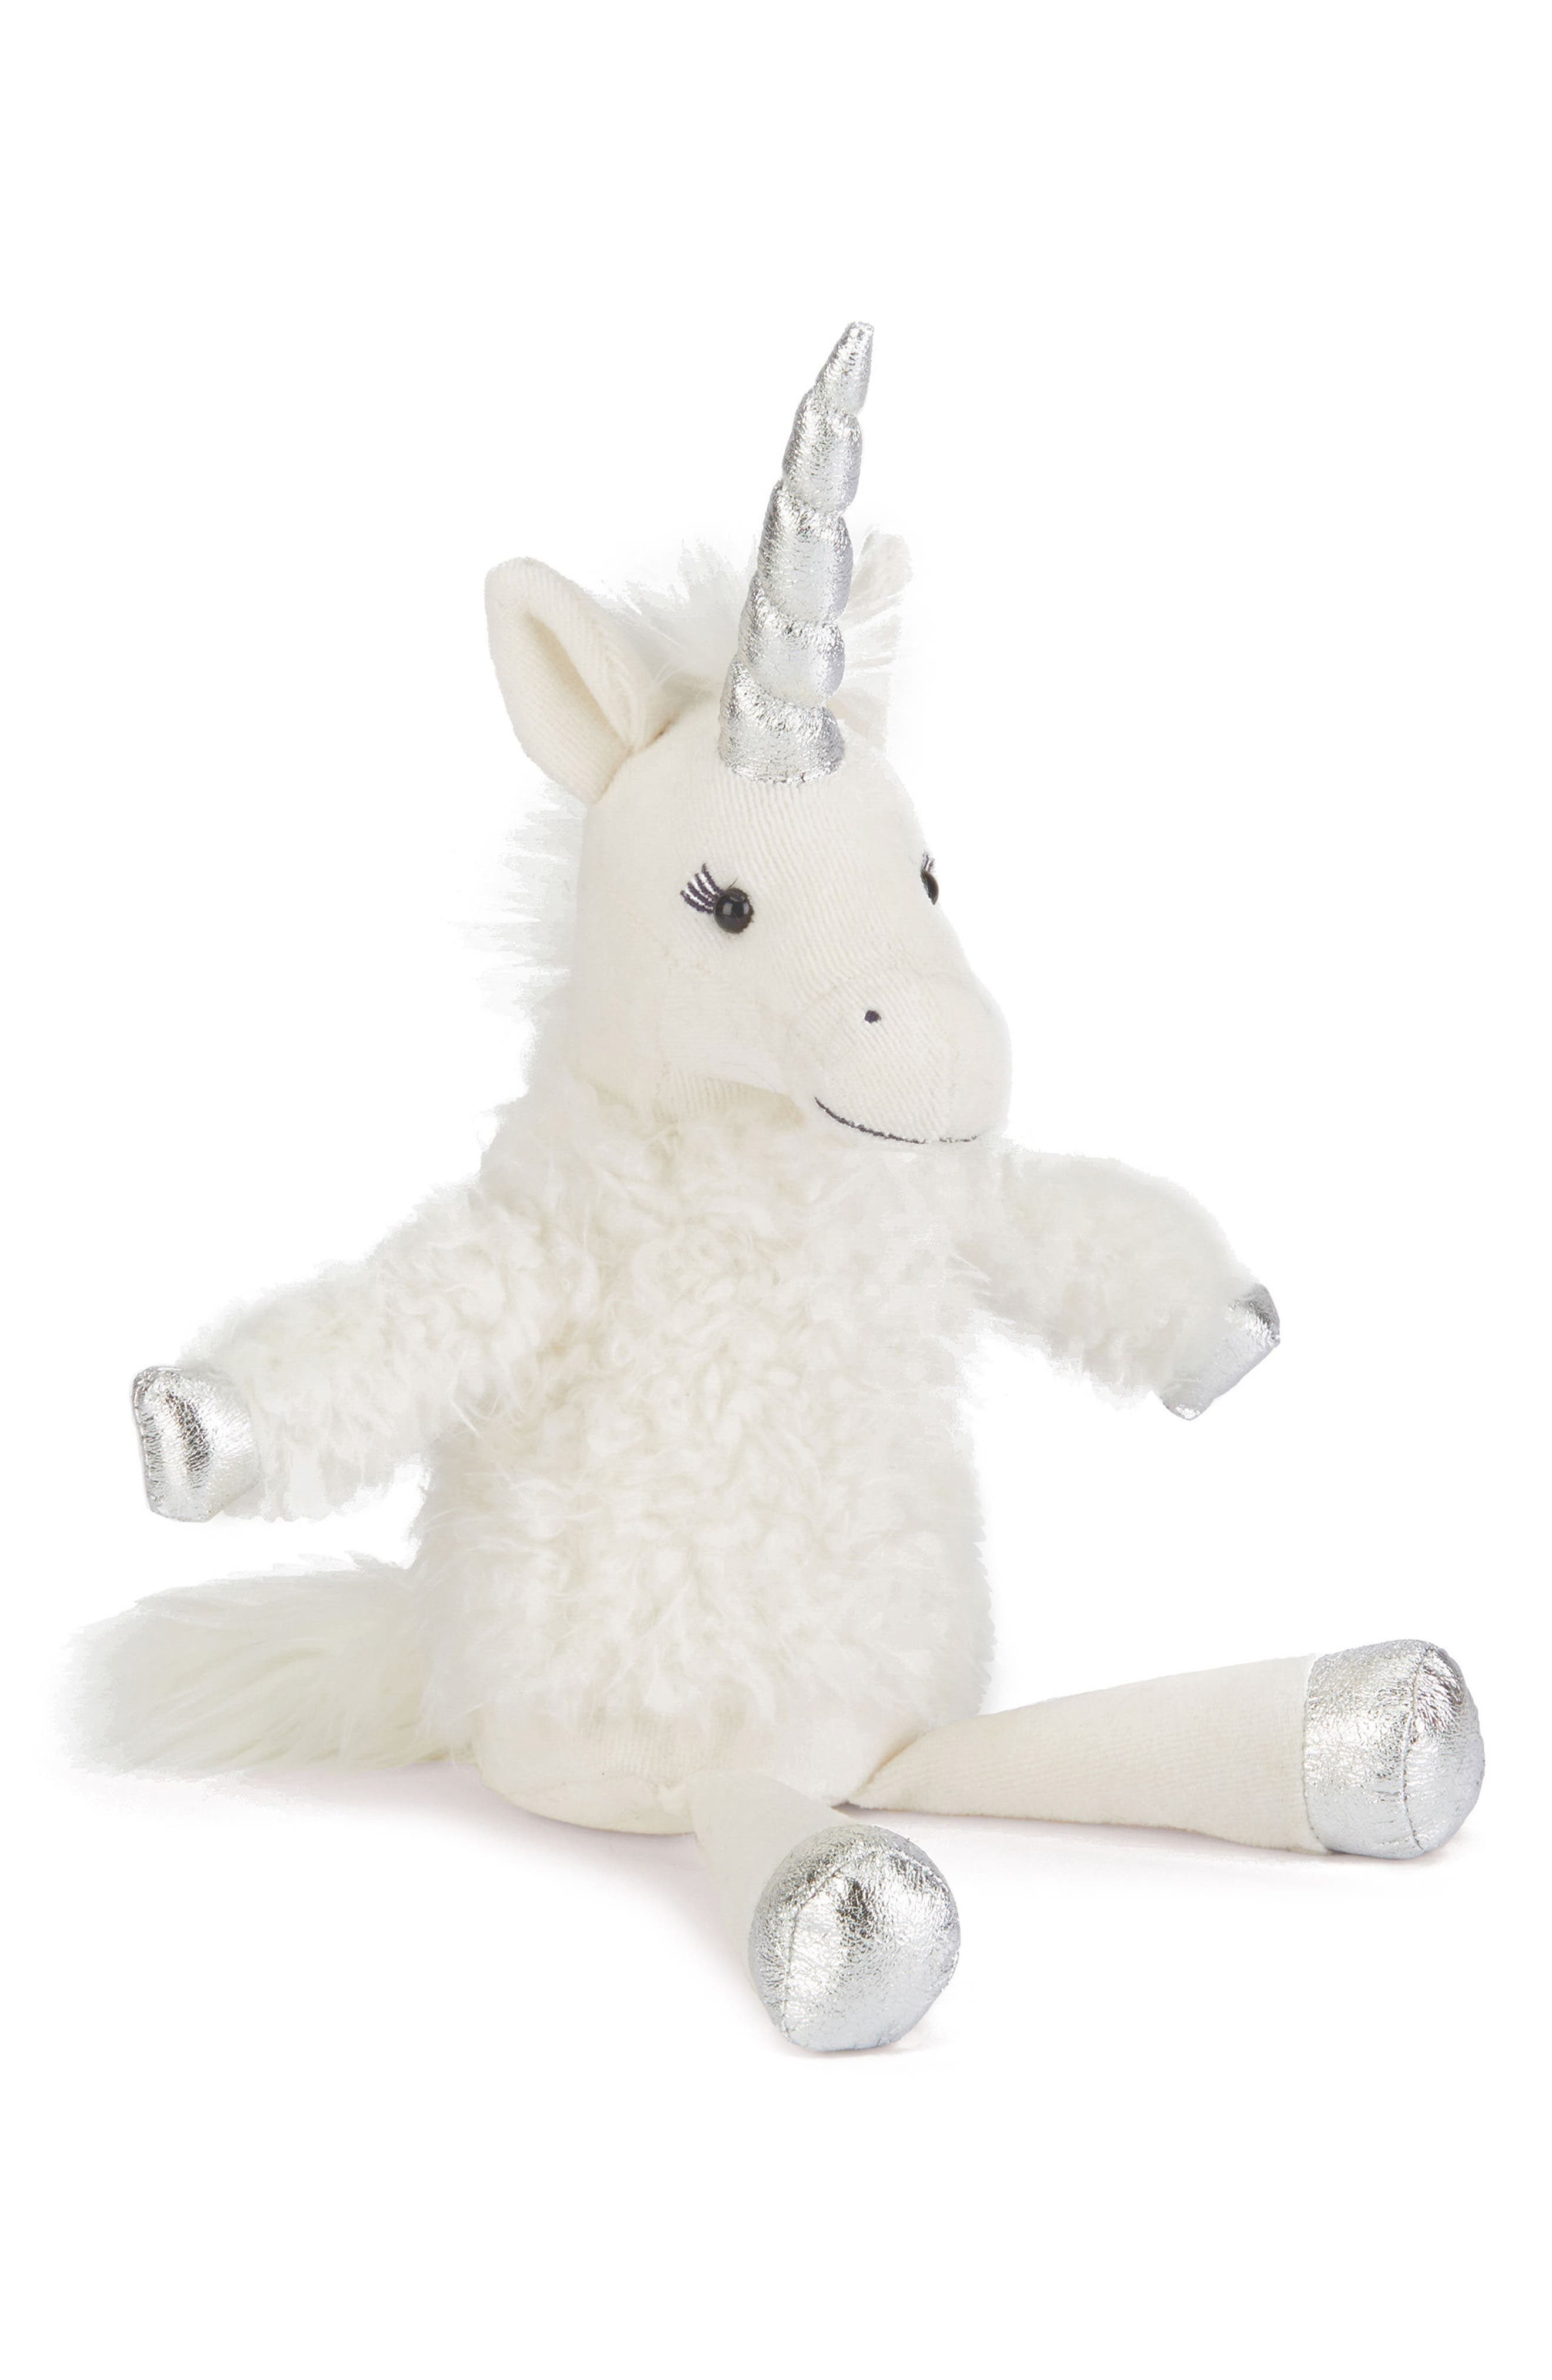 Jellycat Pearl the Unicorn Stuffed Animal